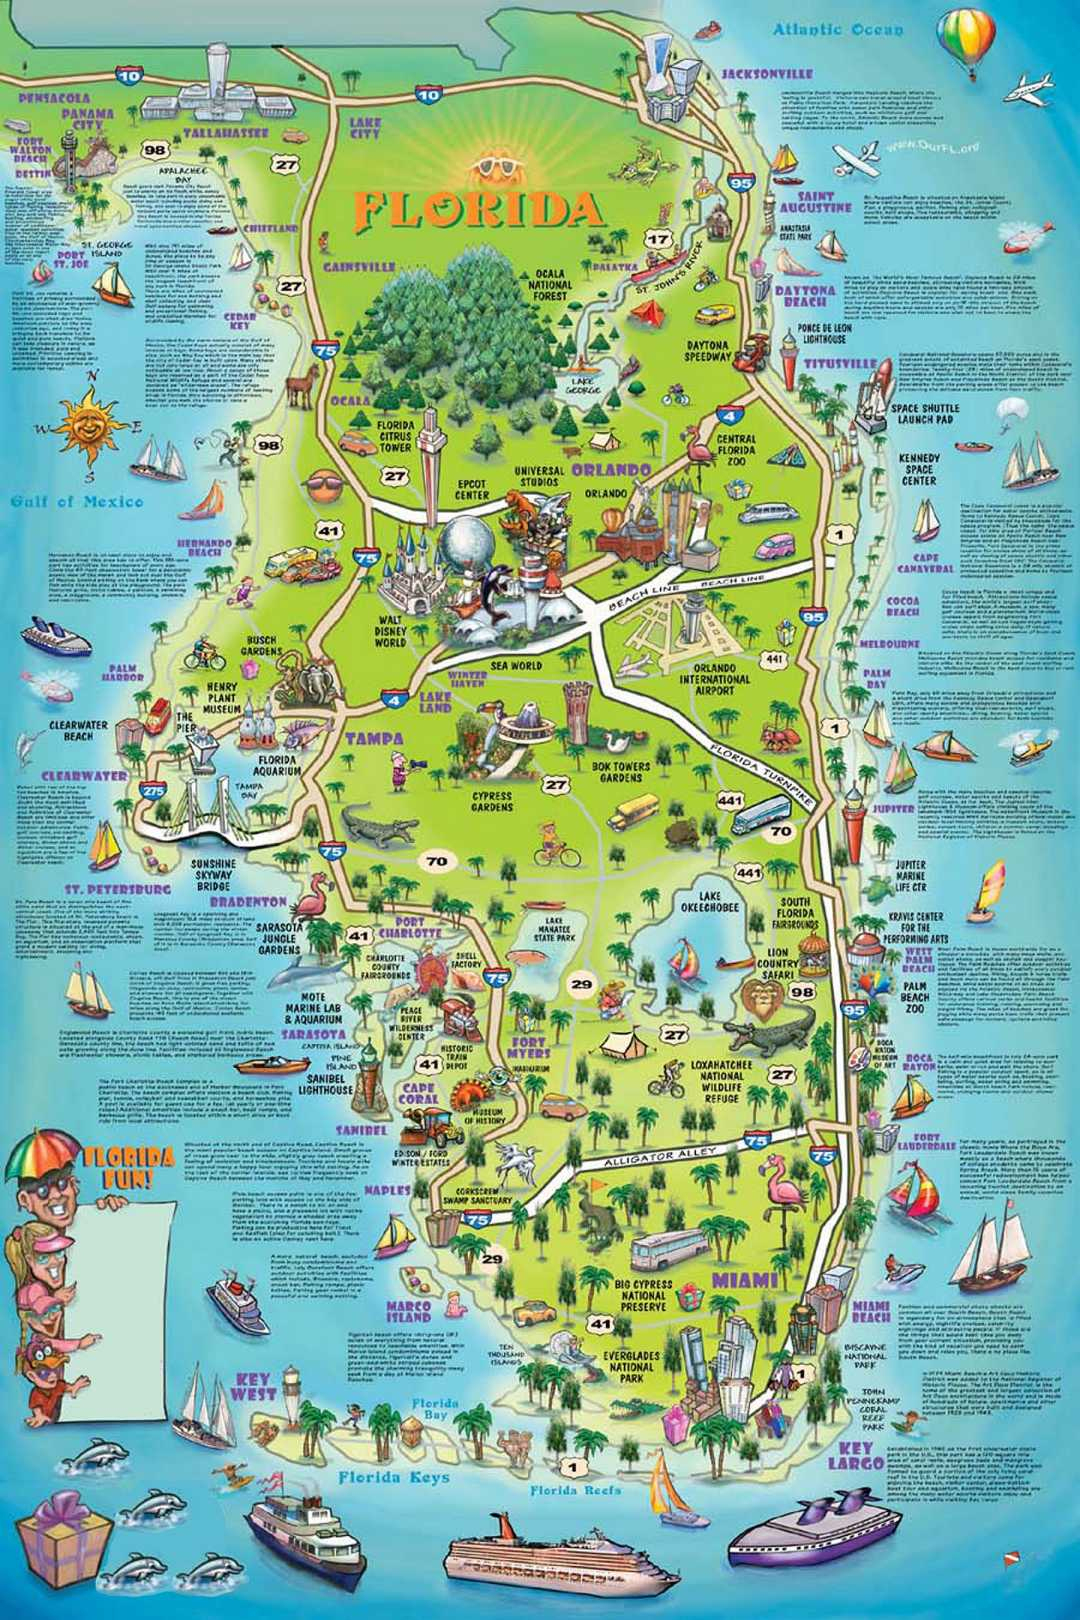 Florida Tourist Attractions Map Local Weather Map - Florida Attractions Map